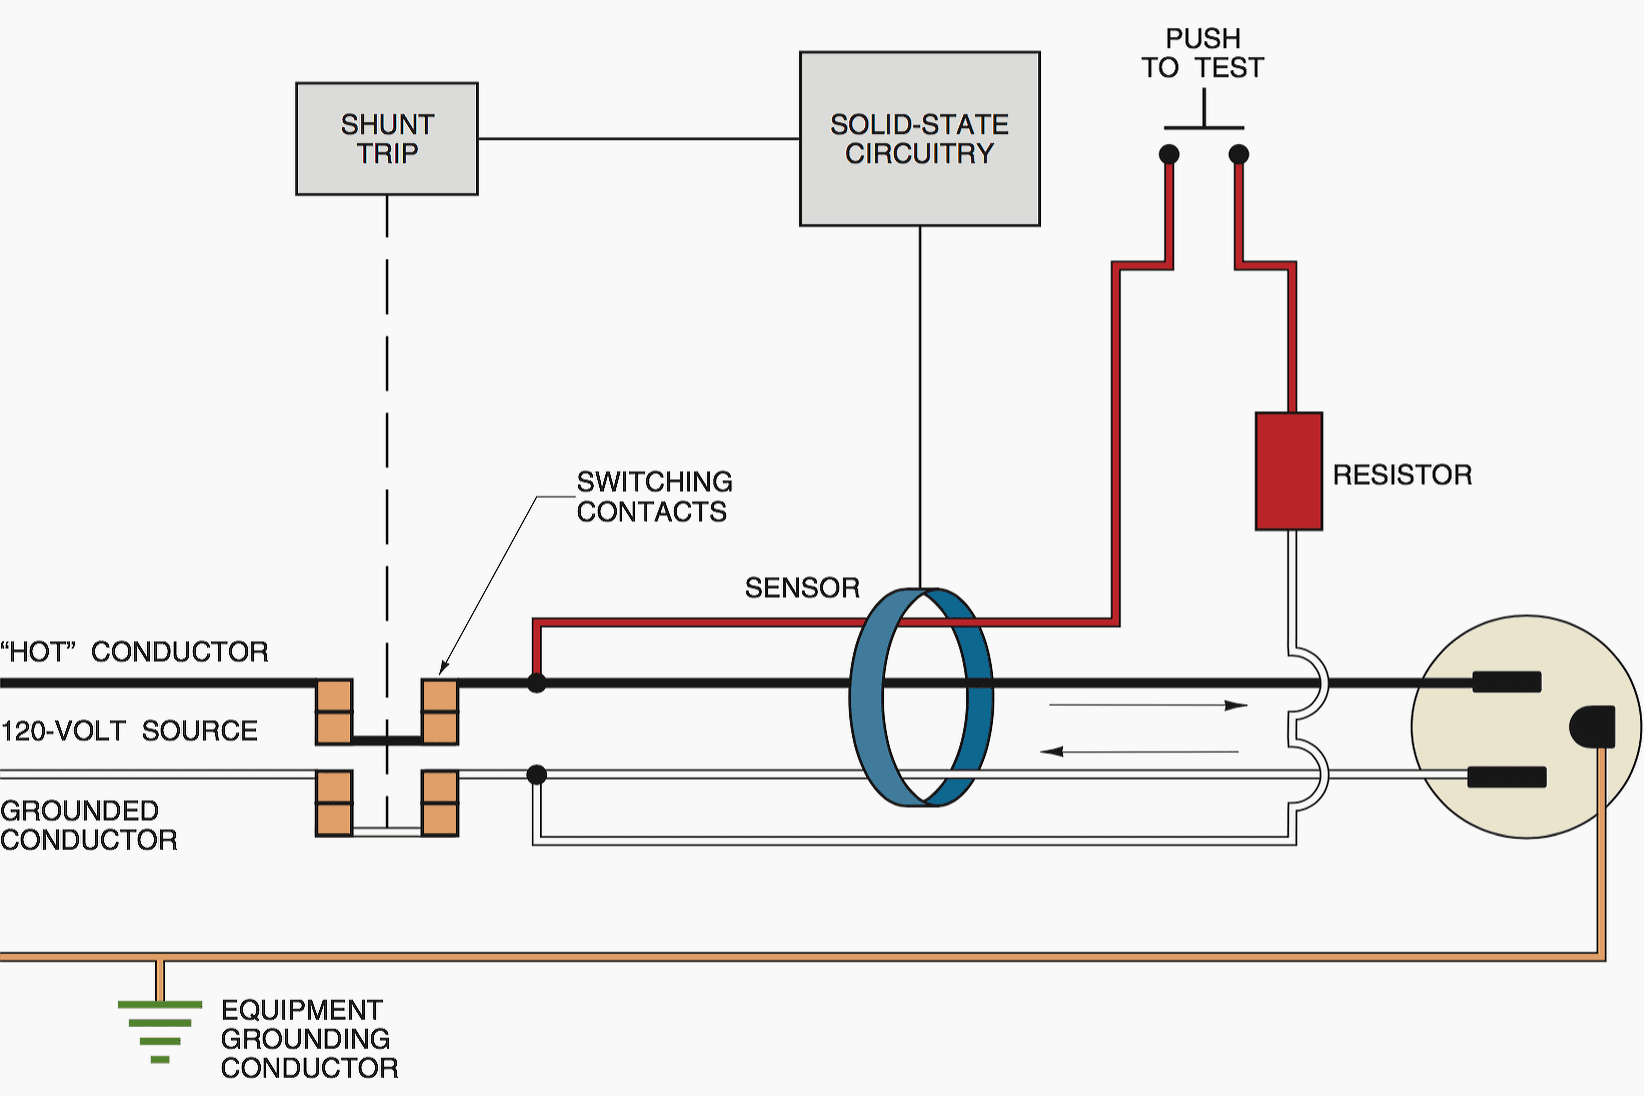 gfci wiring diagrams cat5 bundeswehr what a ground fault circuit interrupter does and it